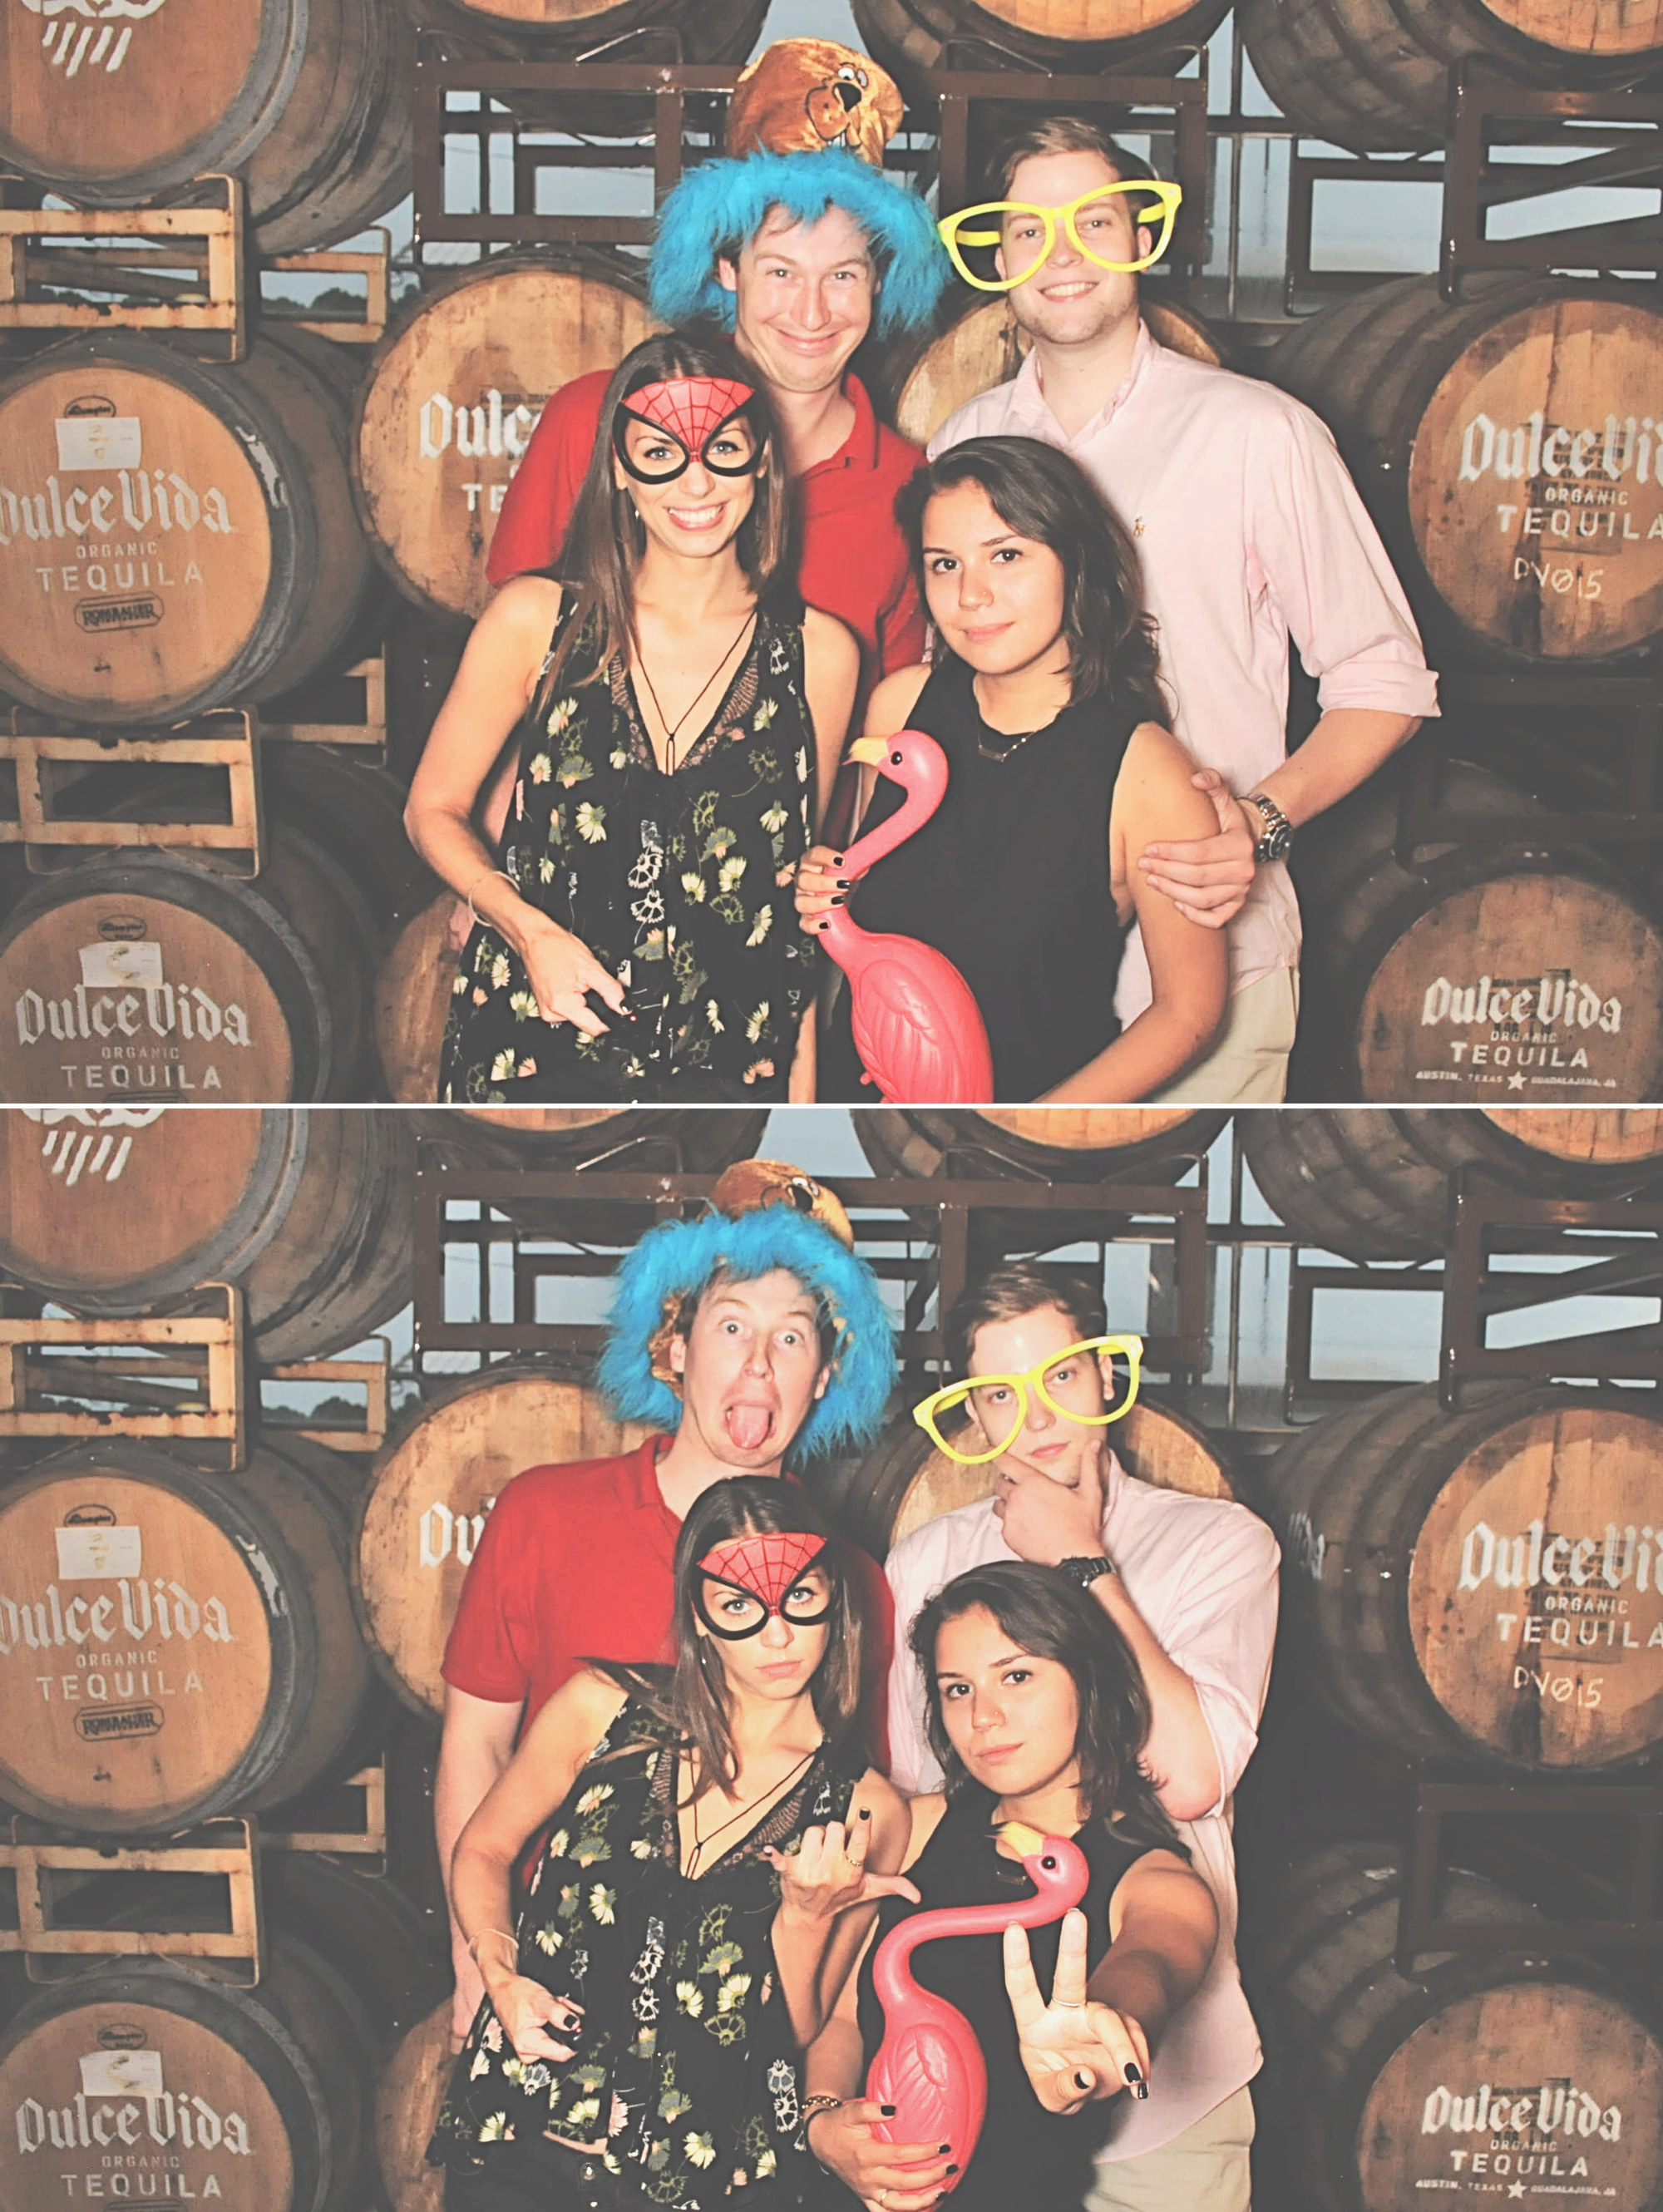 Atlanta Wild Heaven Craft Beers Brewery PhotoBooth - 10-Year Anniversary - RobotBooth 1